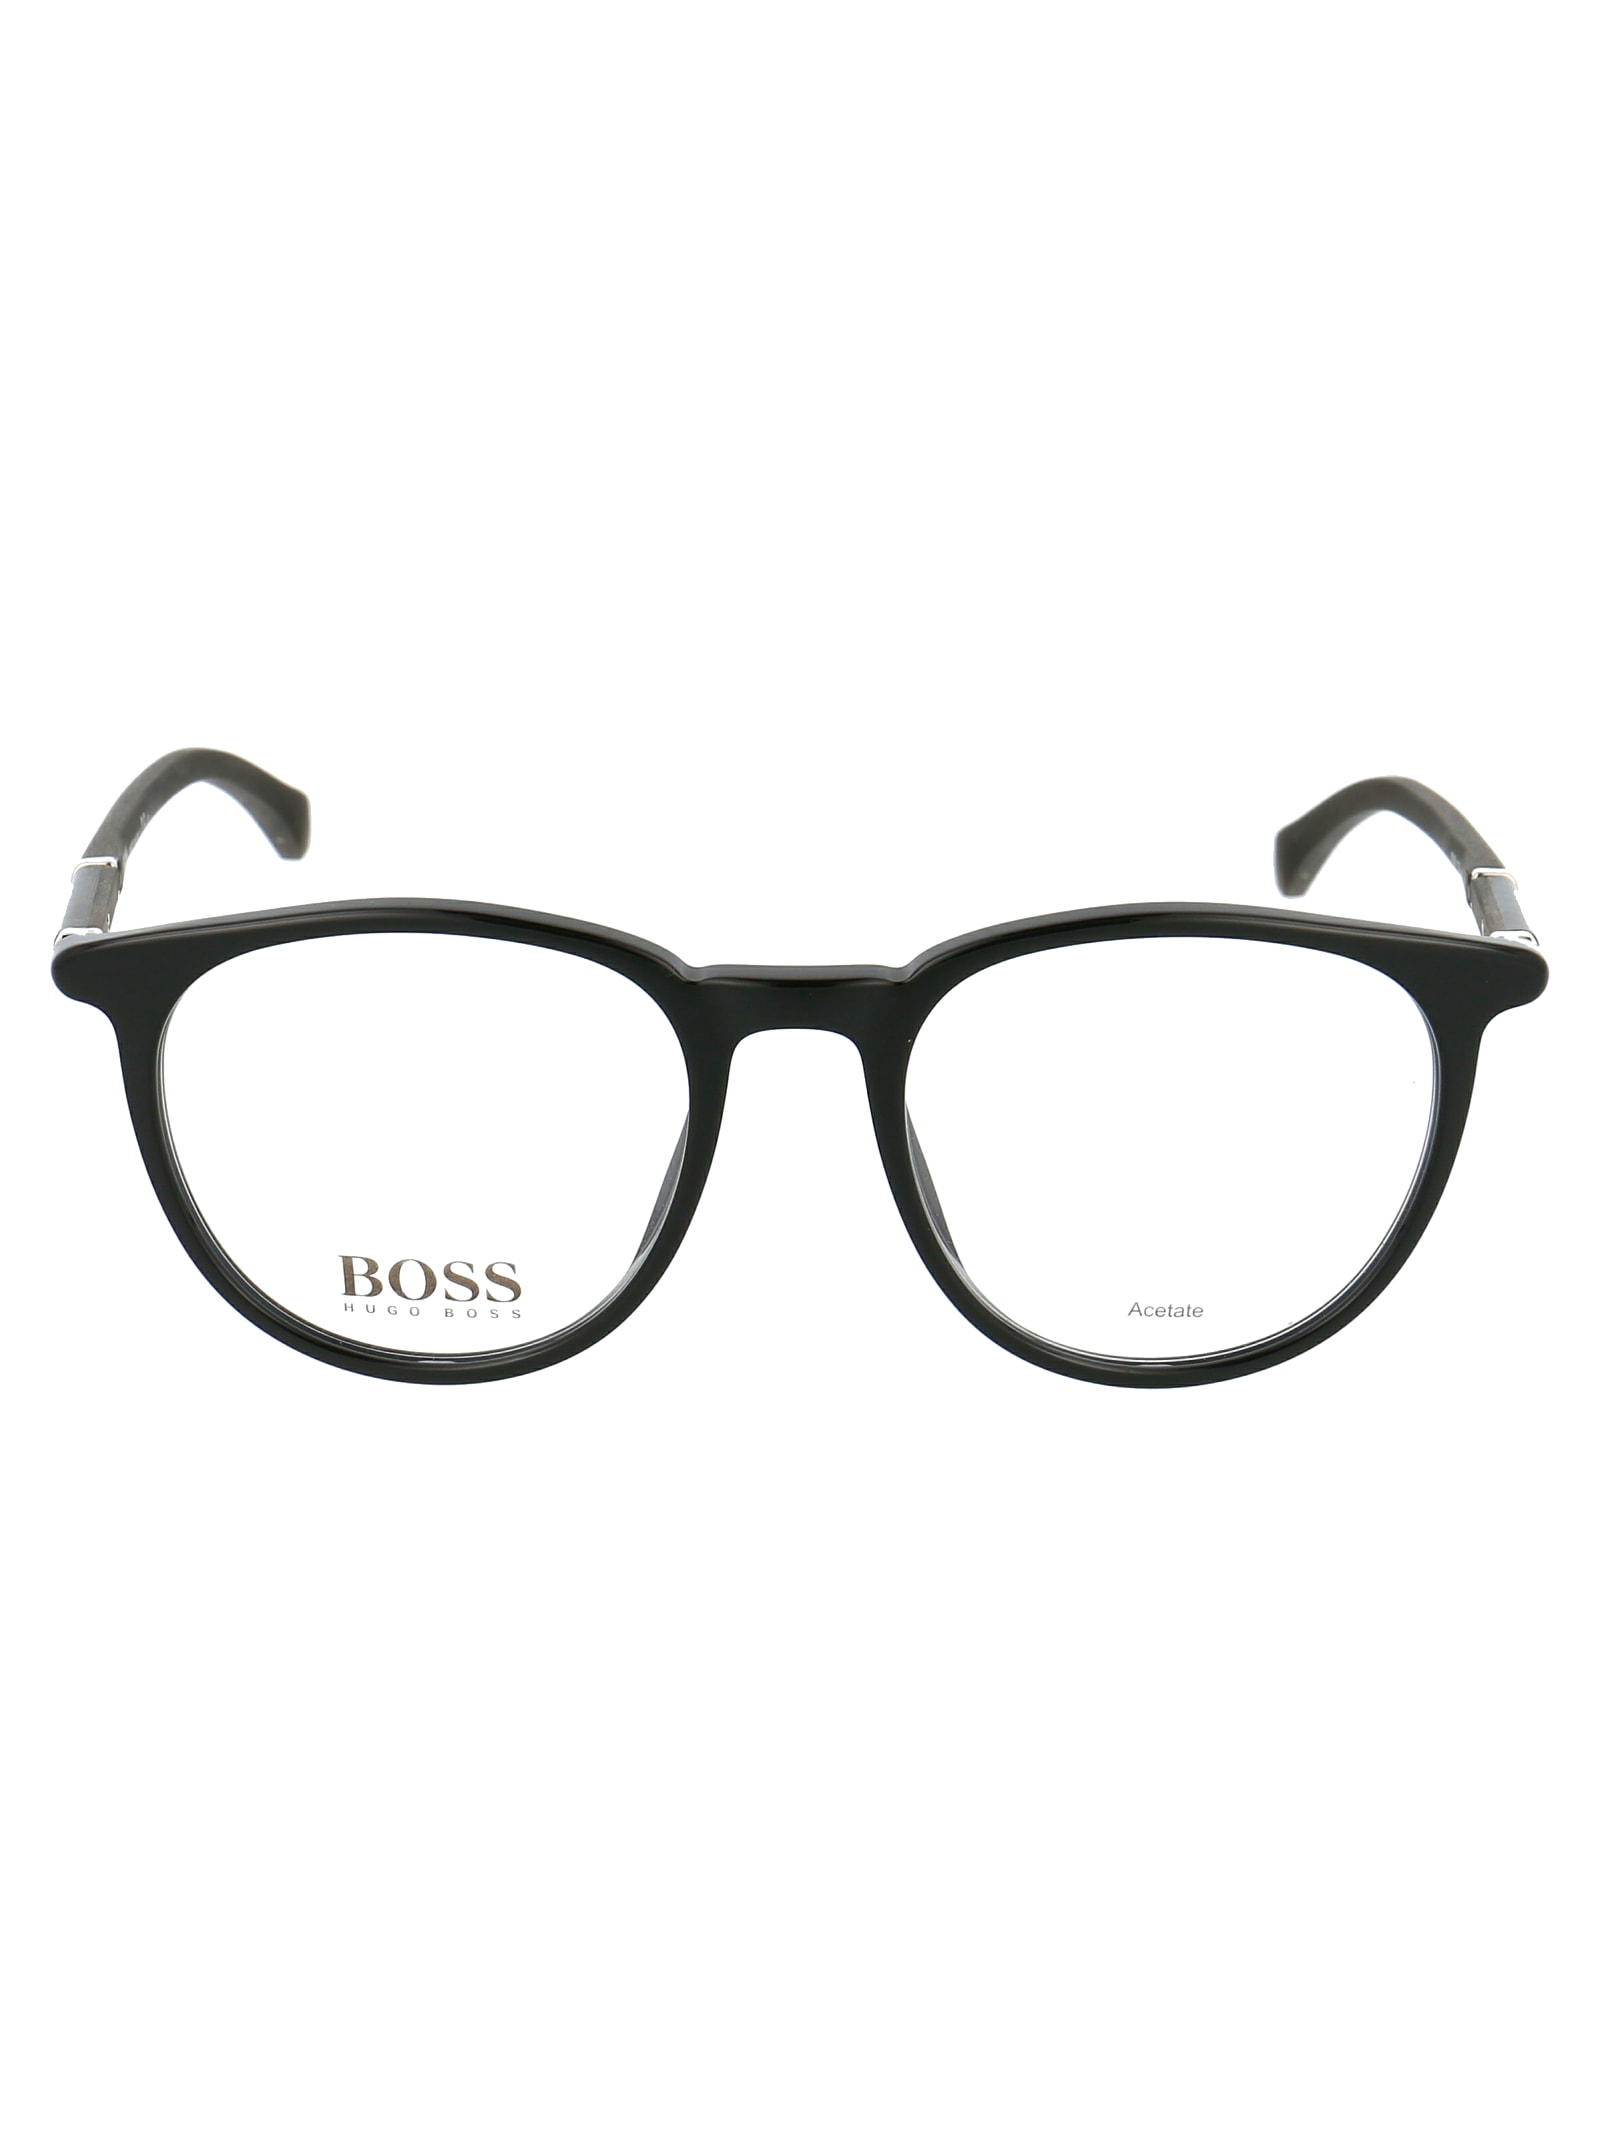 Boss 1132 Glasses